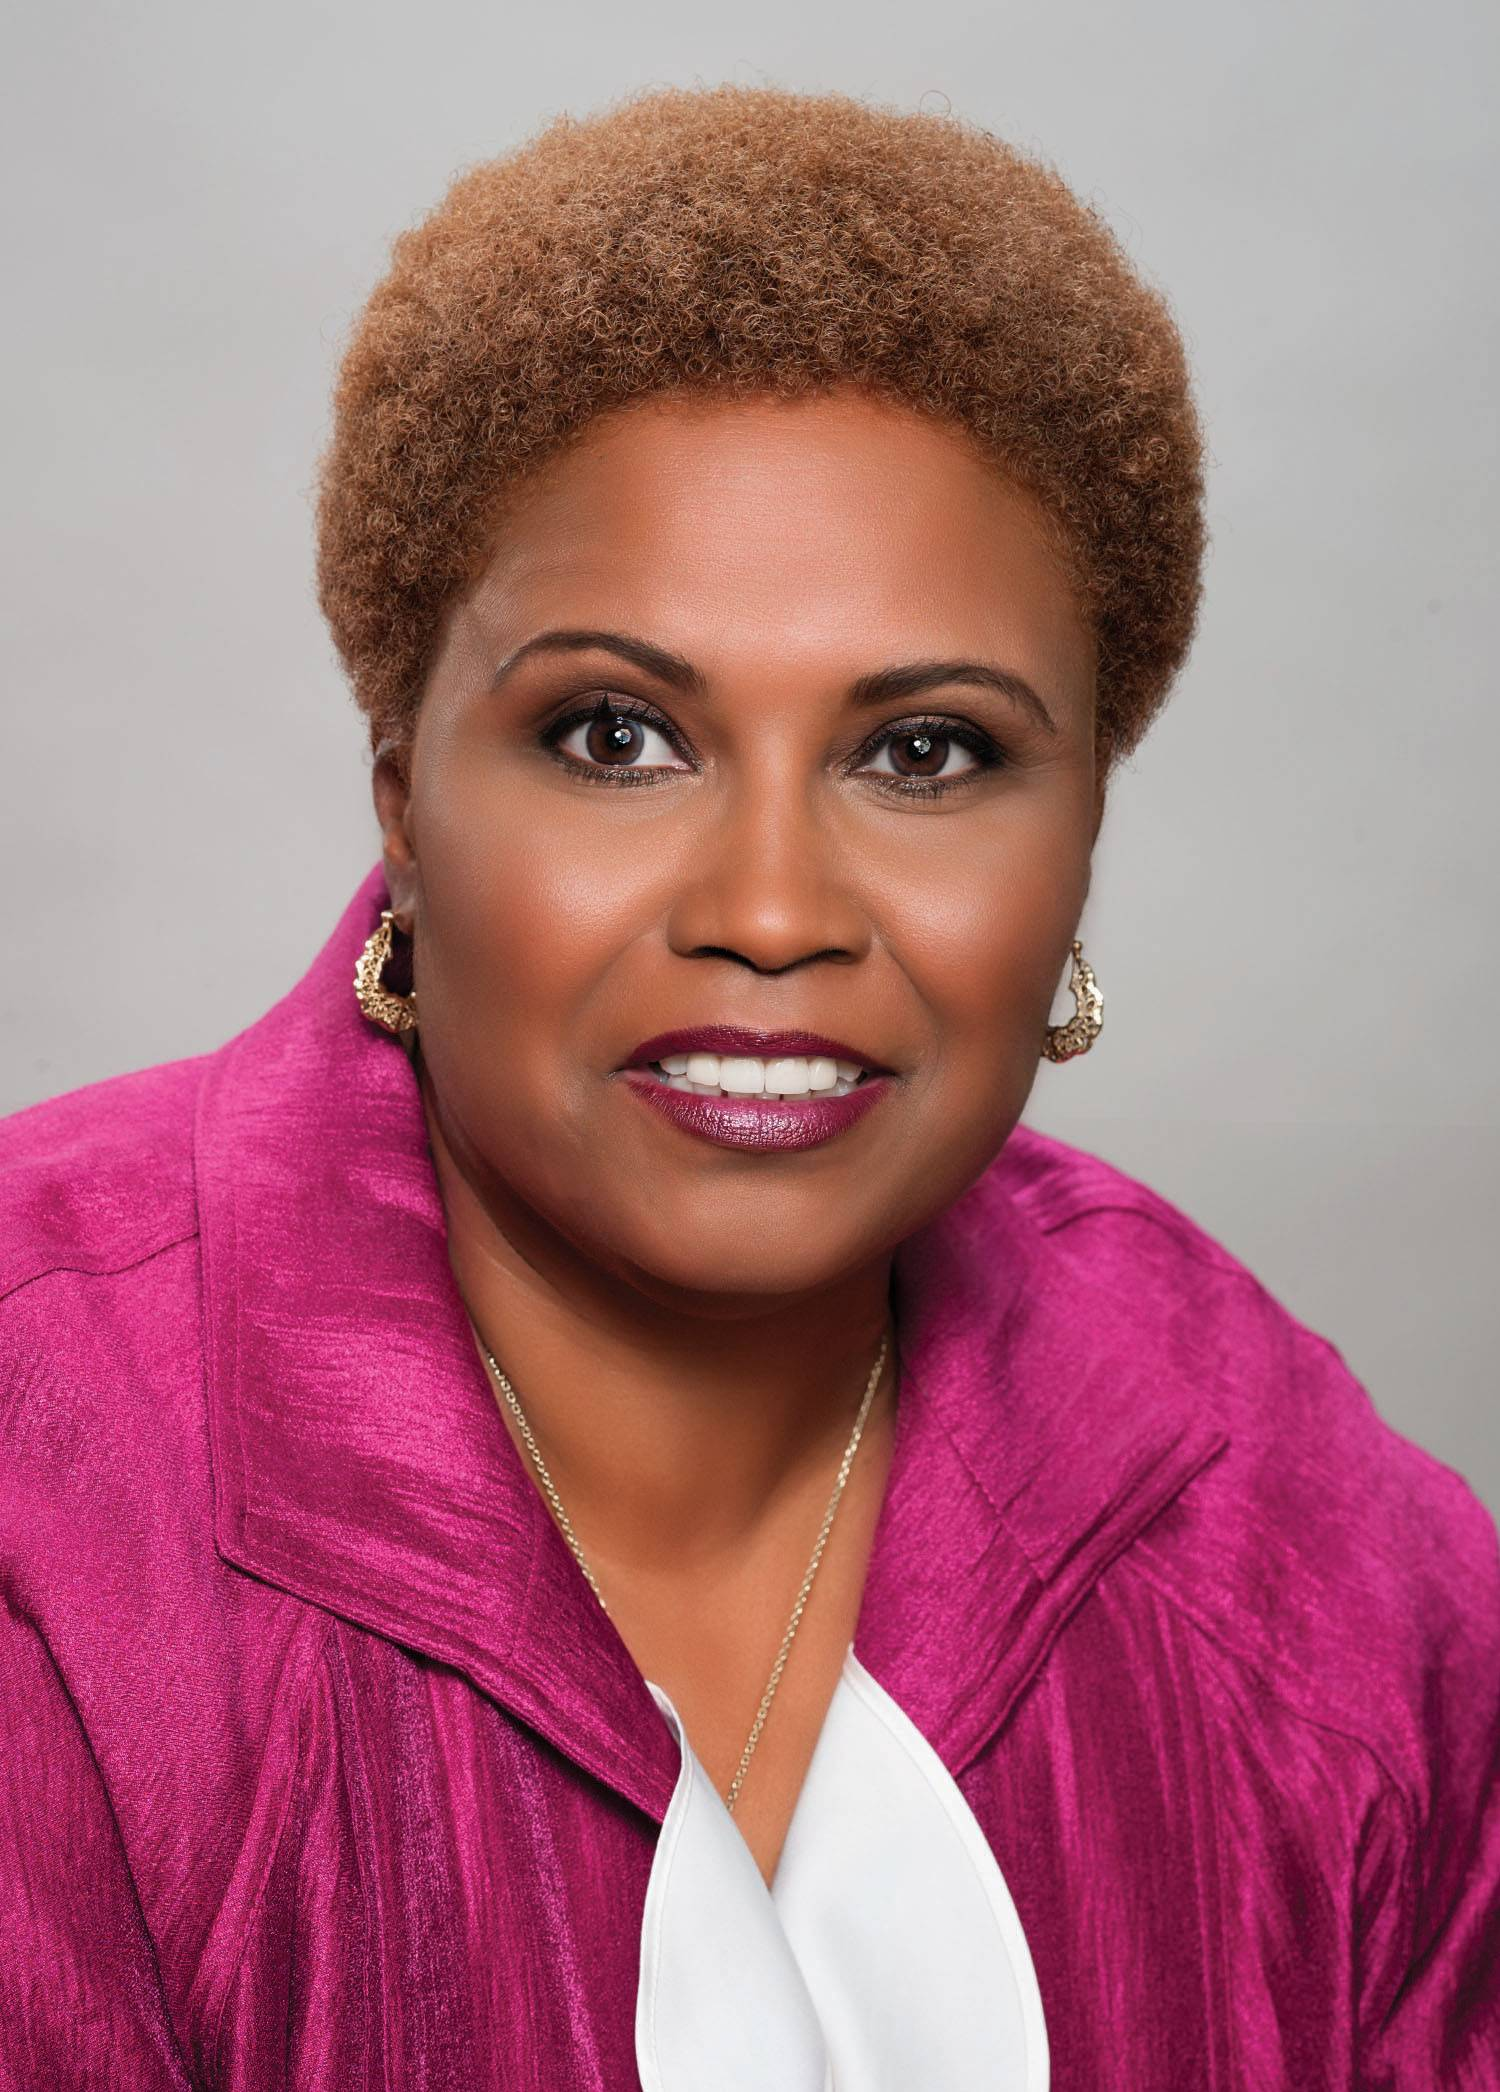 Karen Yarbrough, candidate for Cook County recorder of deeds, Democrat